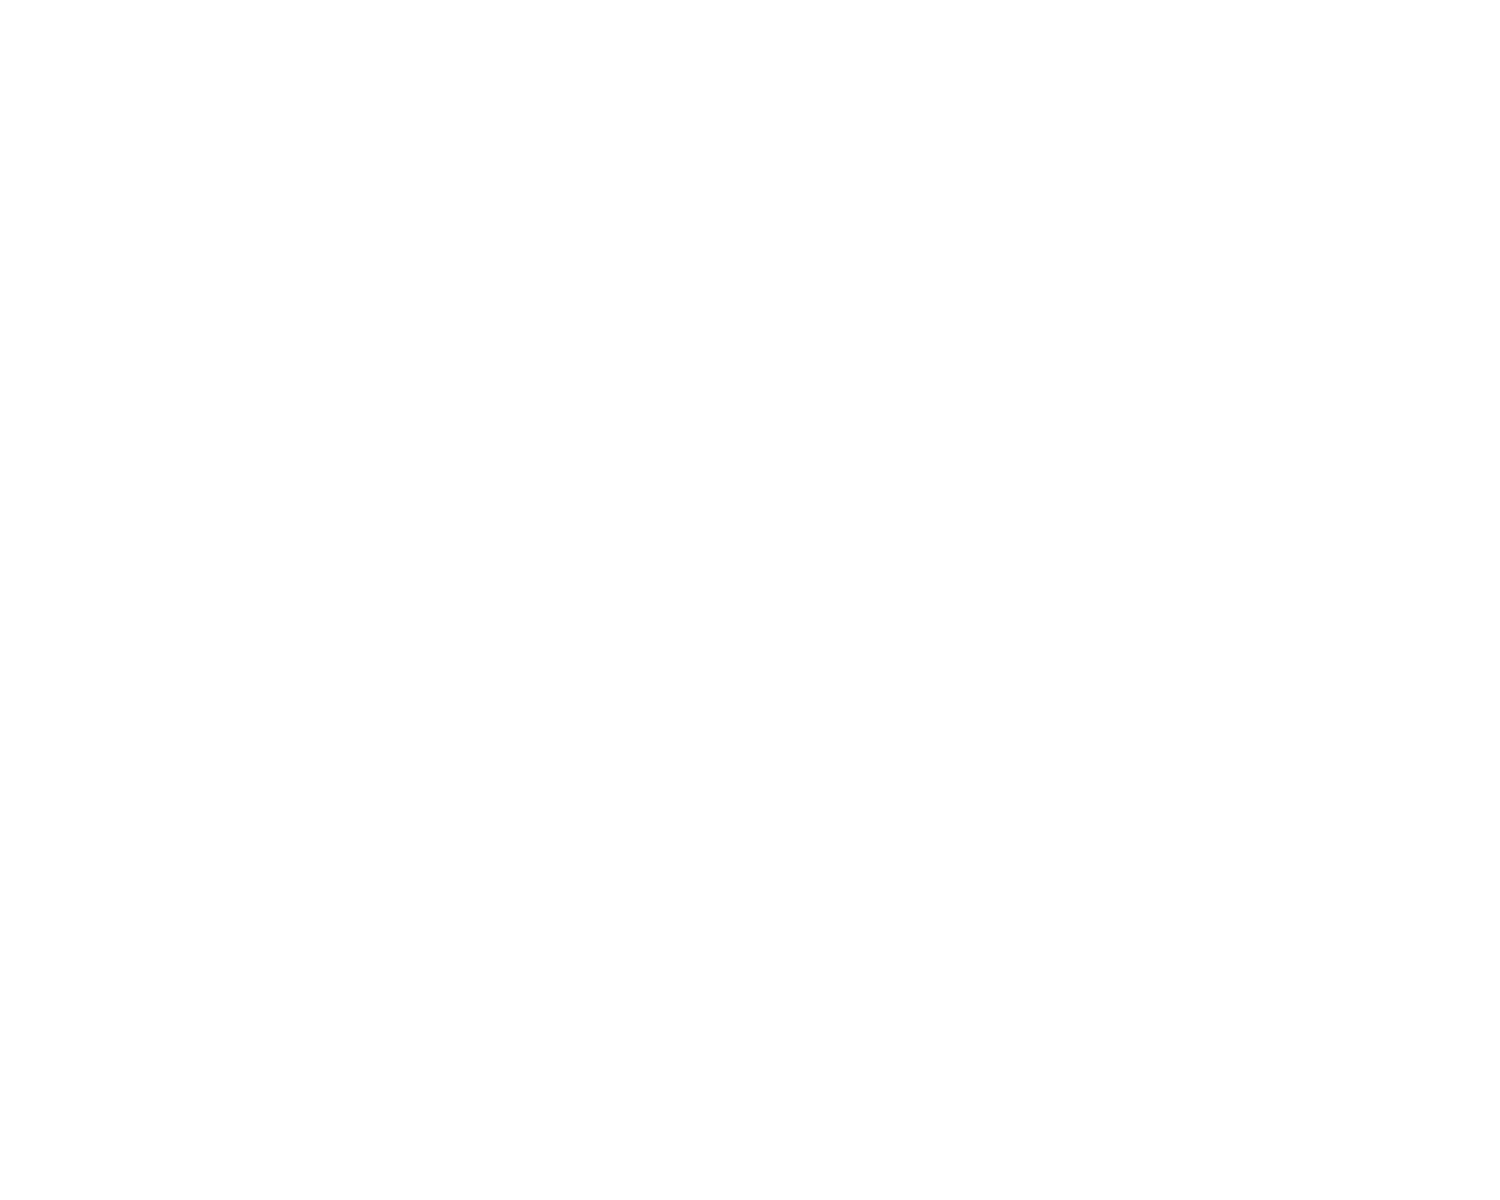 First Baptist Church | Morris, MN